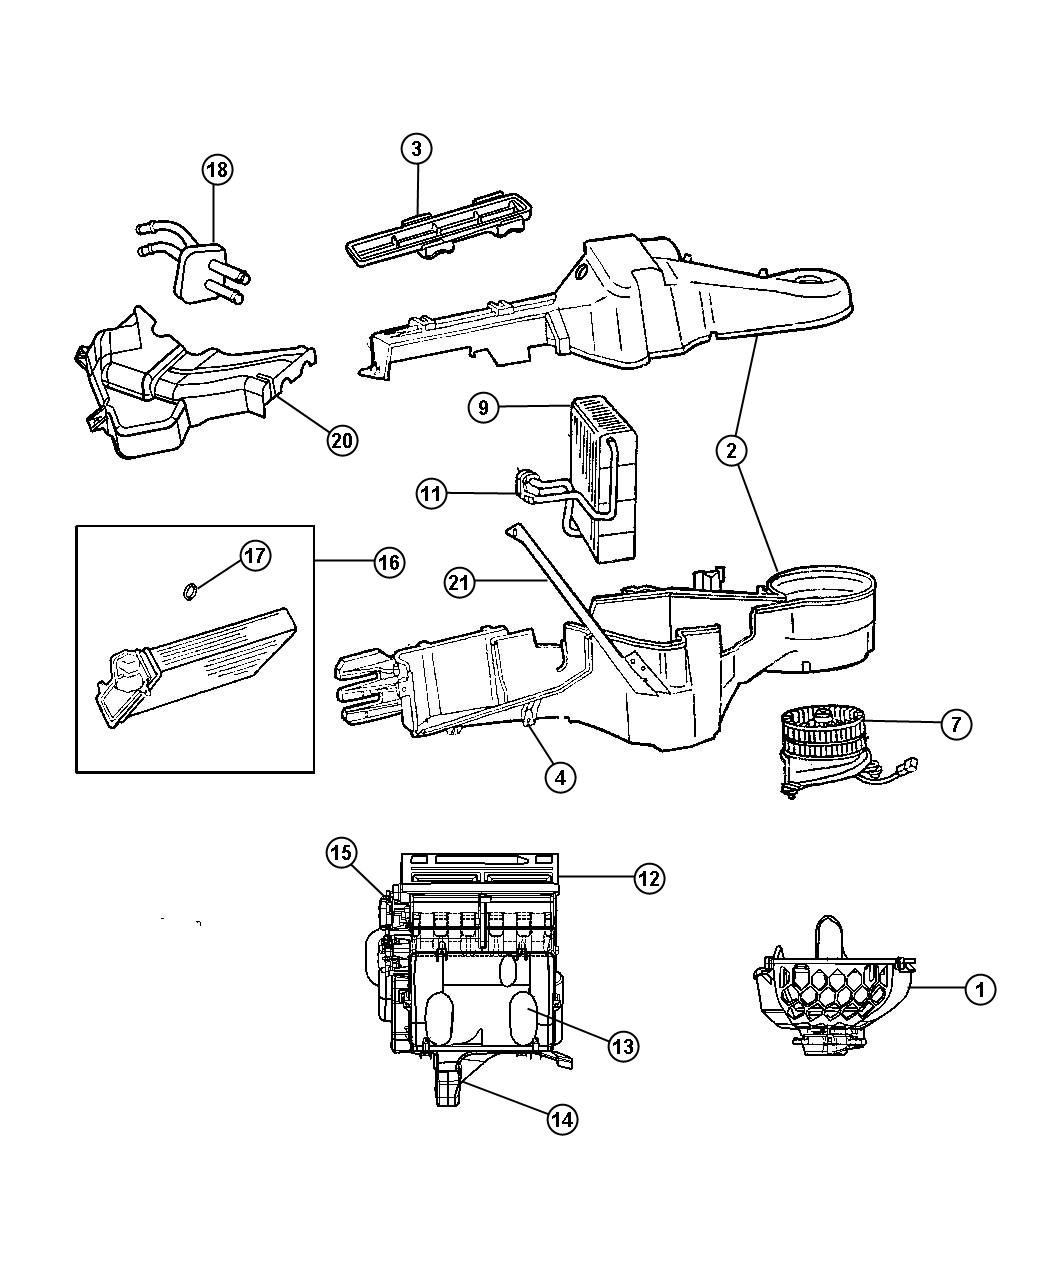 Chrysler Town & Country Wiring. Used for: a/c and heater